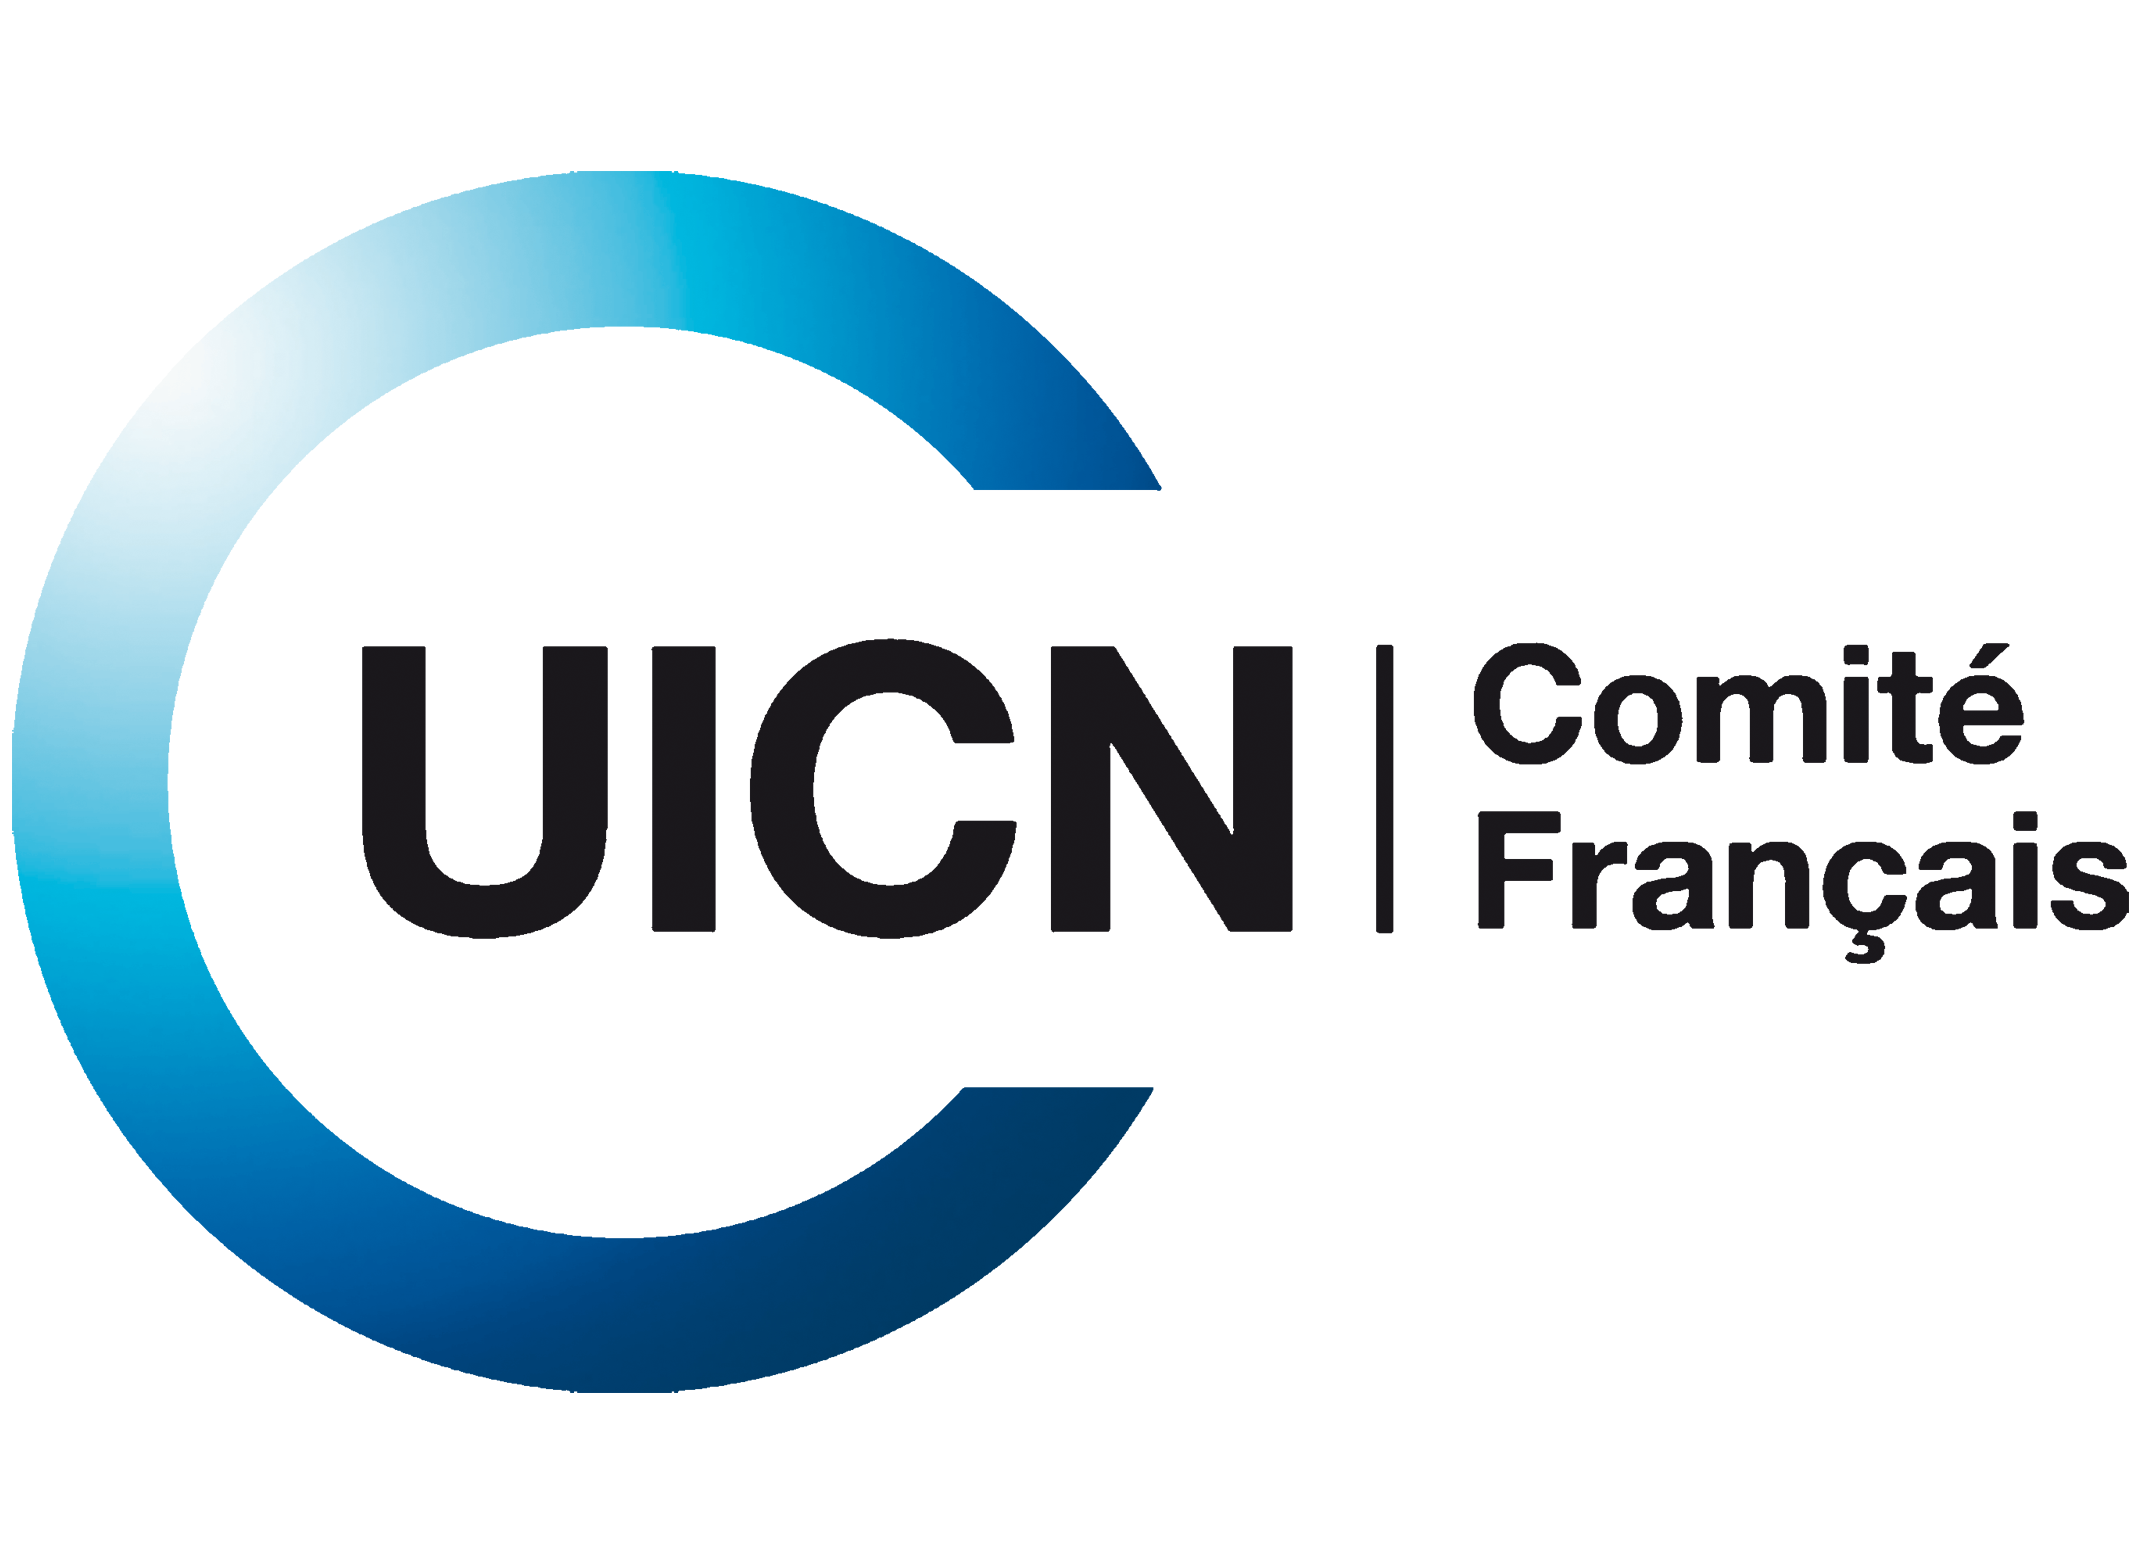 UICN comité français | Un monde juste qui valorise et conserve la nature